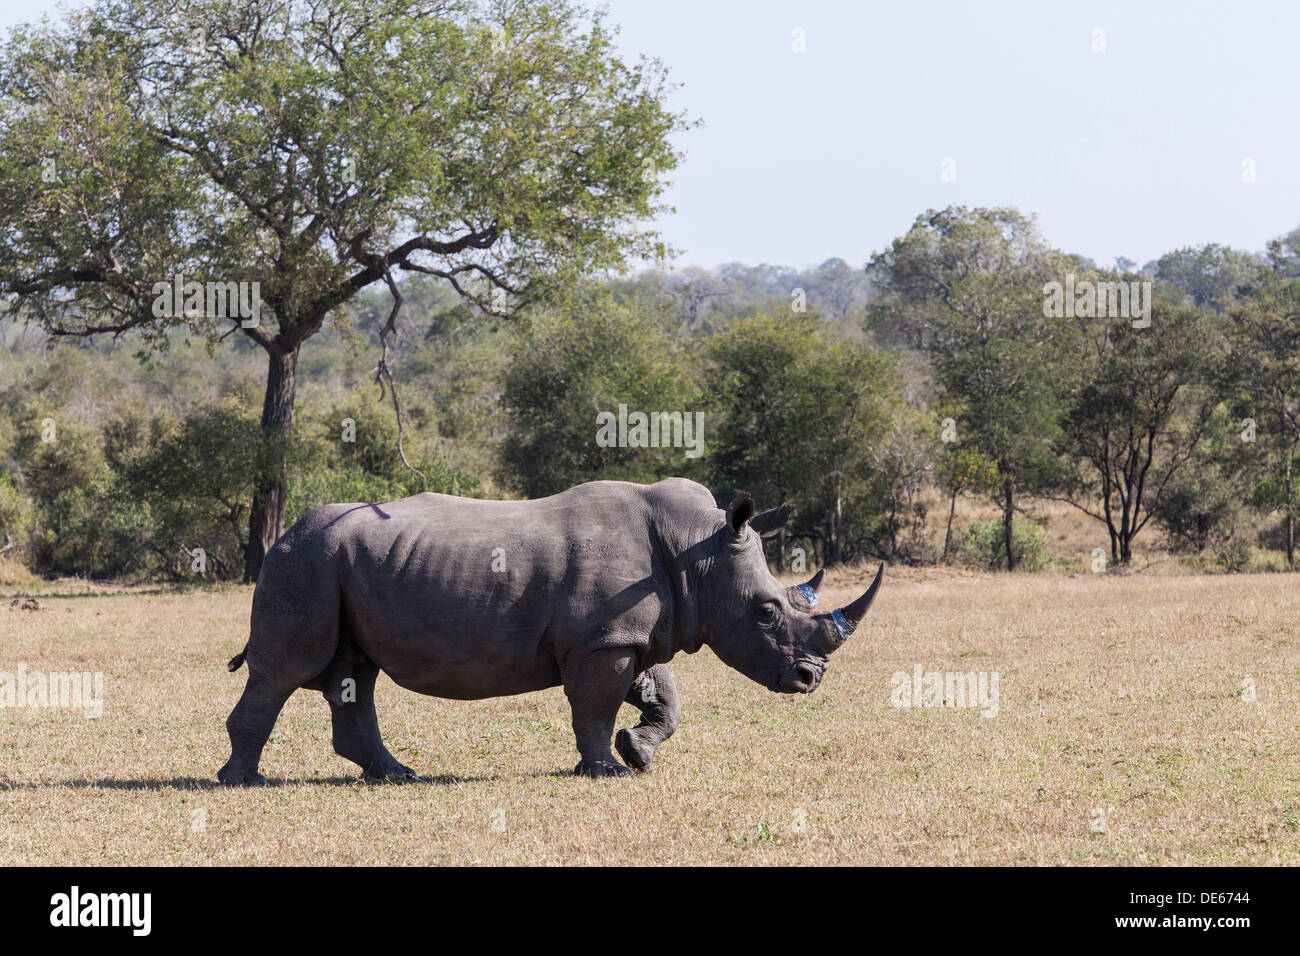 A rhino walking off after having its horn treated with indellible dye and a toxin as an anti-poaching tereatiment - Stock Image